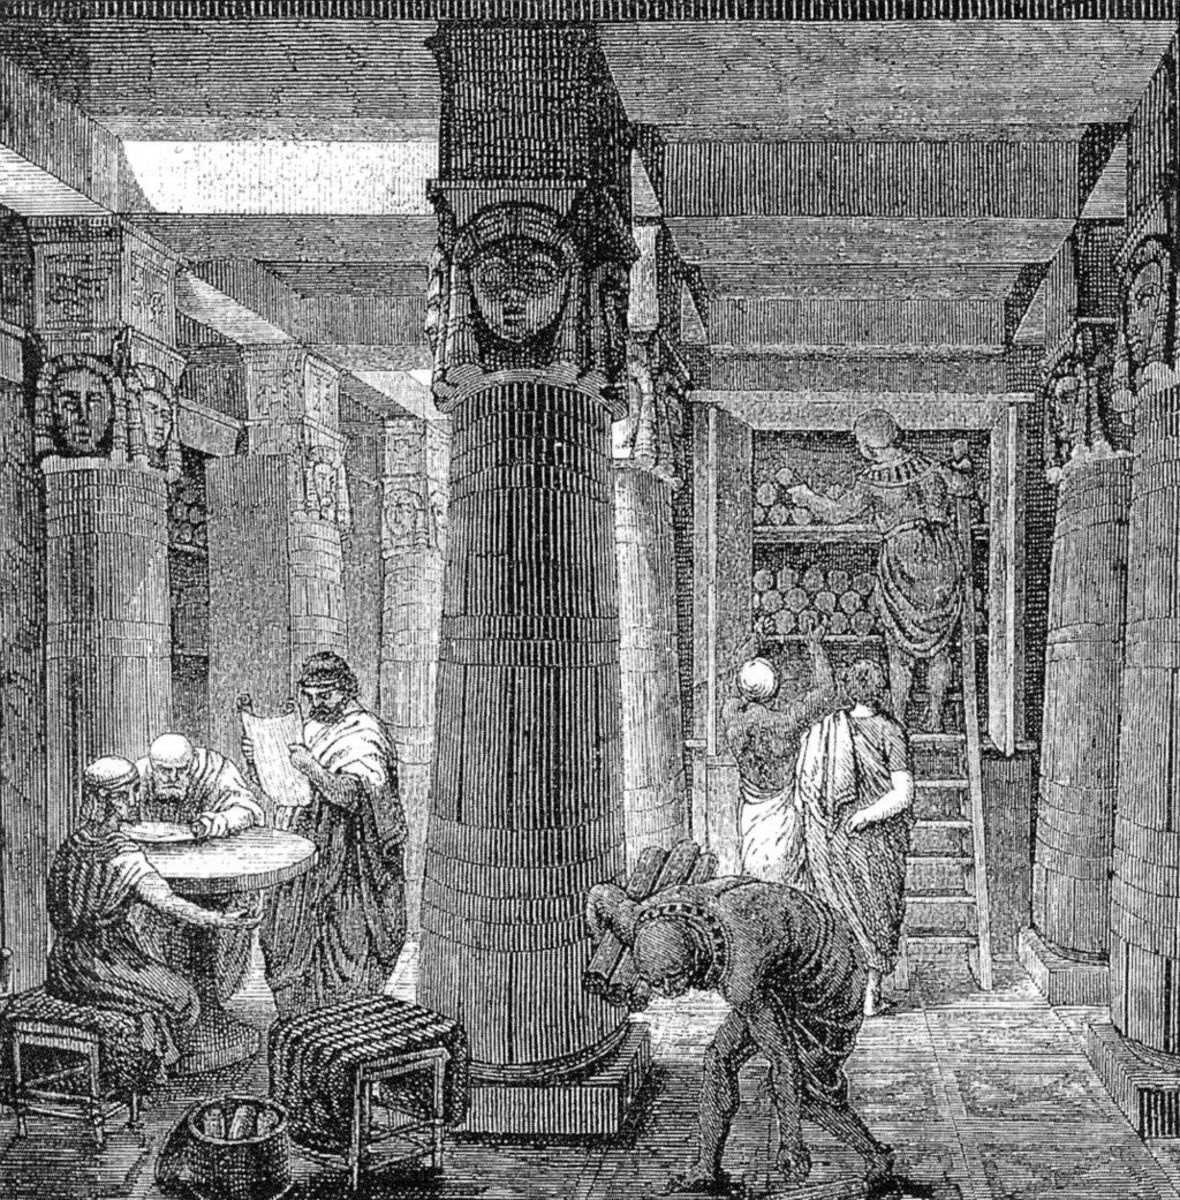 """Artistic rendering of the Library of Alexandria, based on some archaeological evidence. (""""The Great Library of Alexandria"""" by O. Von Corven)"""